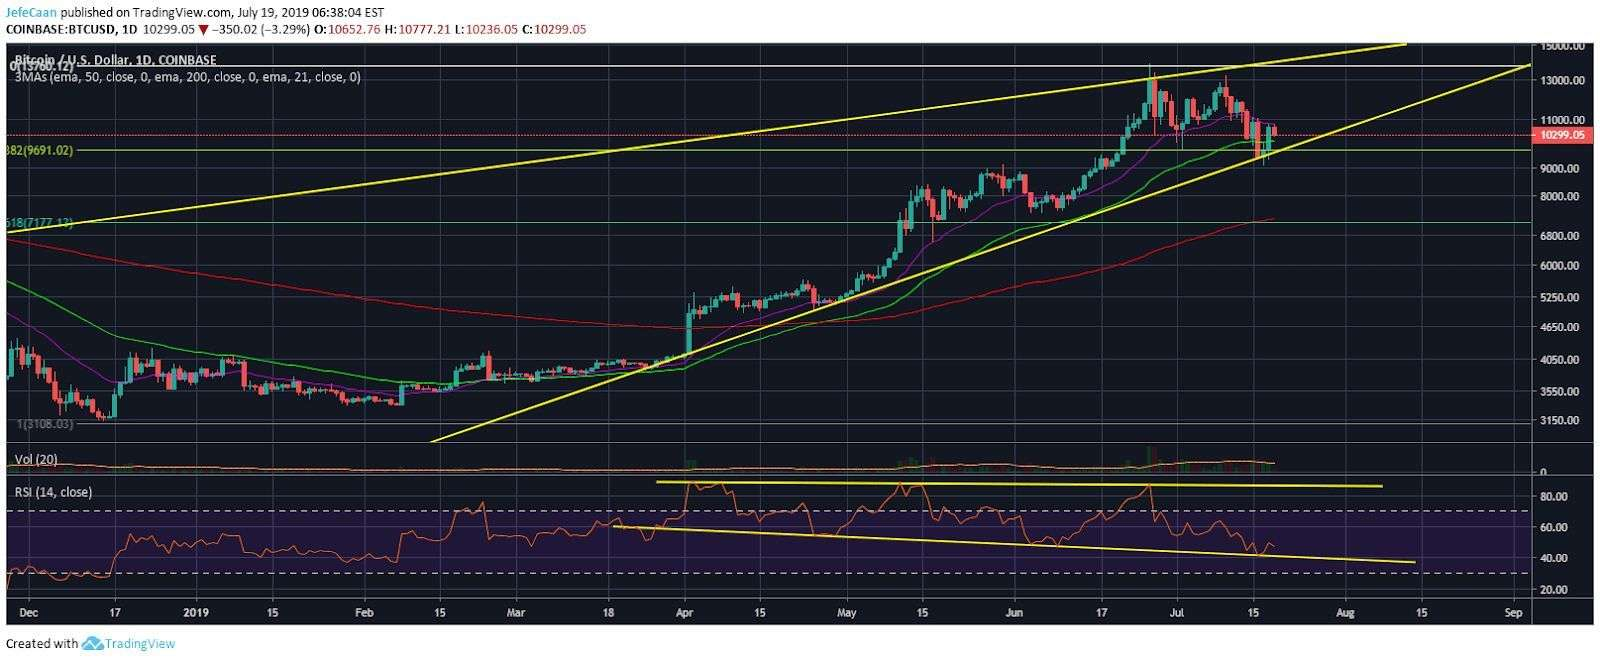 cryptodaily.co.uk: Bitcoin (BTC) Stays Strong Above 50 Day EMA, Significant Further Upside Likely